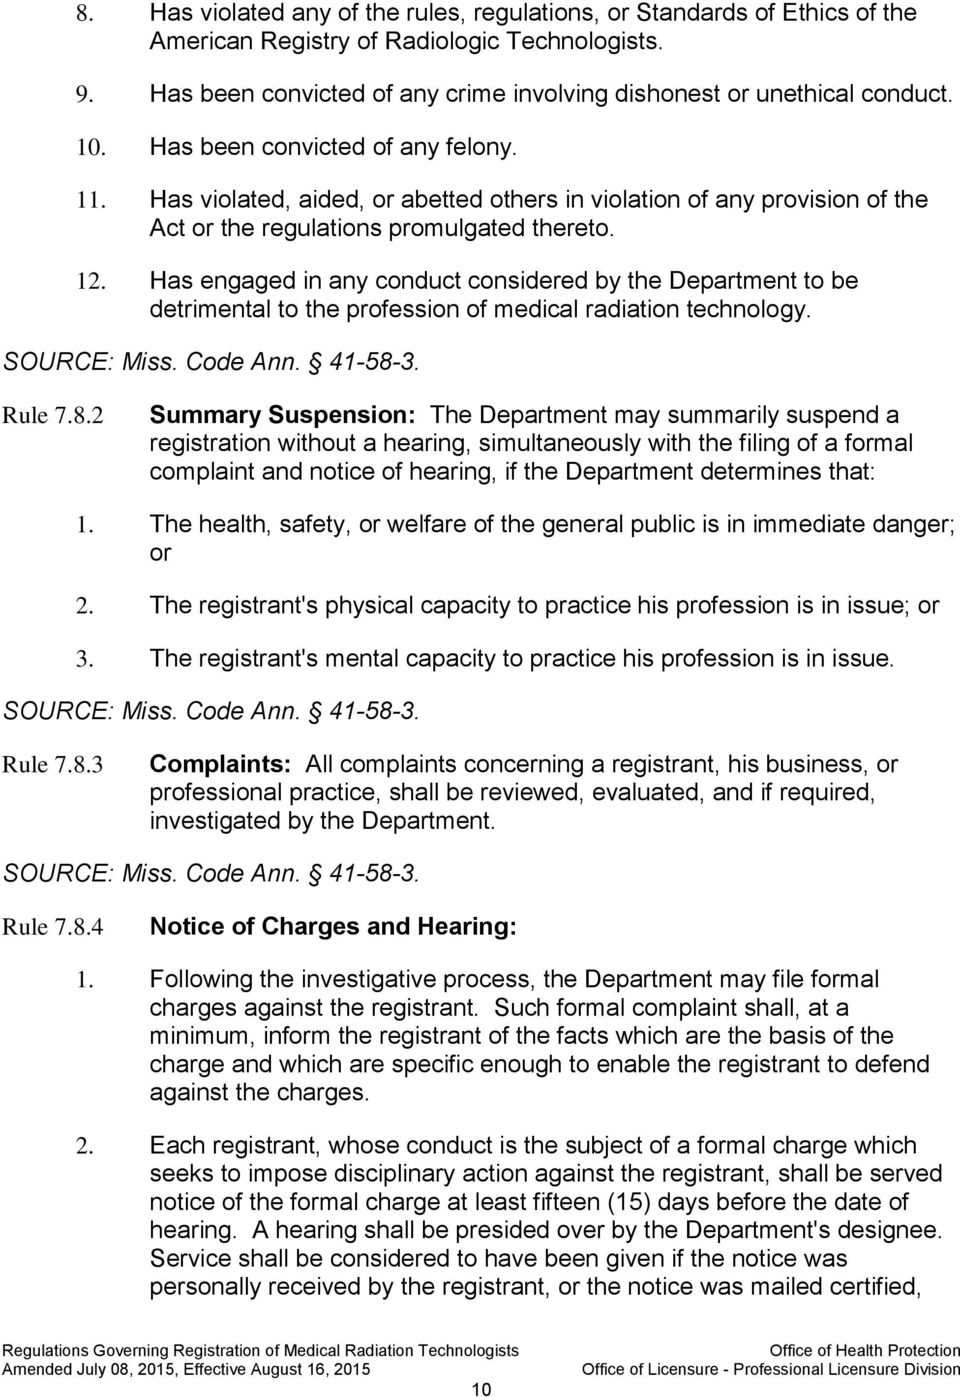 Has engaged in any conduct considered by the Department to be detrimental to the profession of medical radiation technology. Rule 7.8.